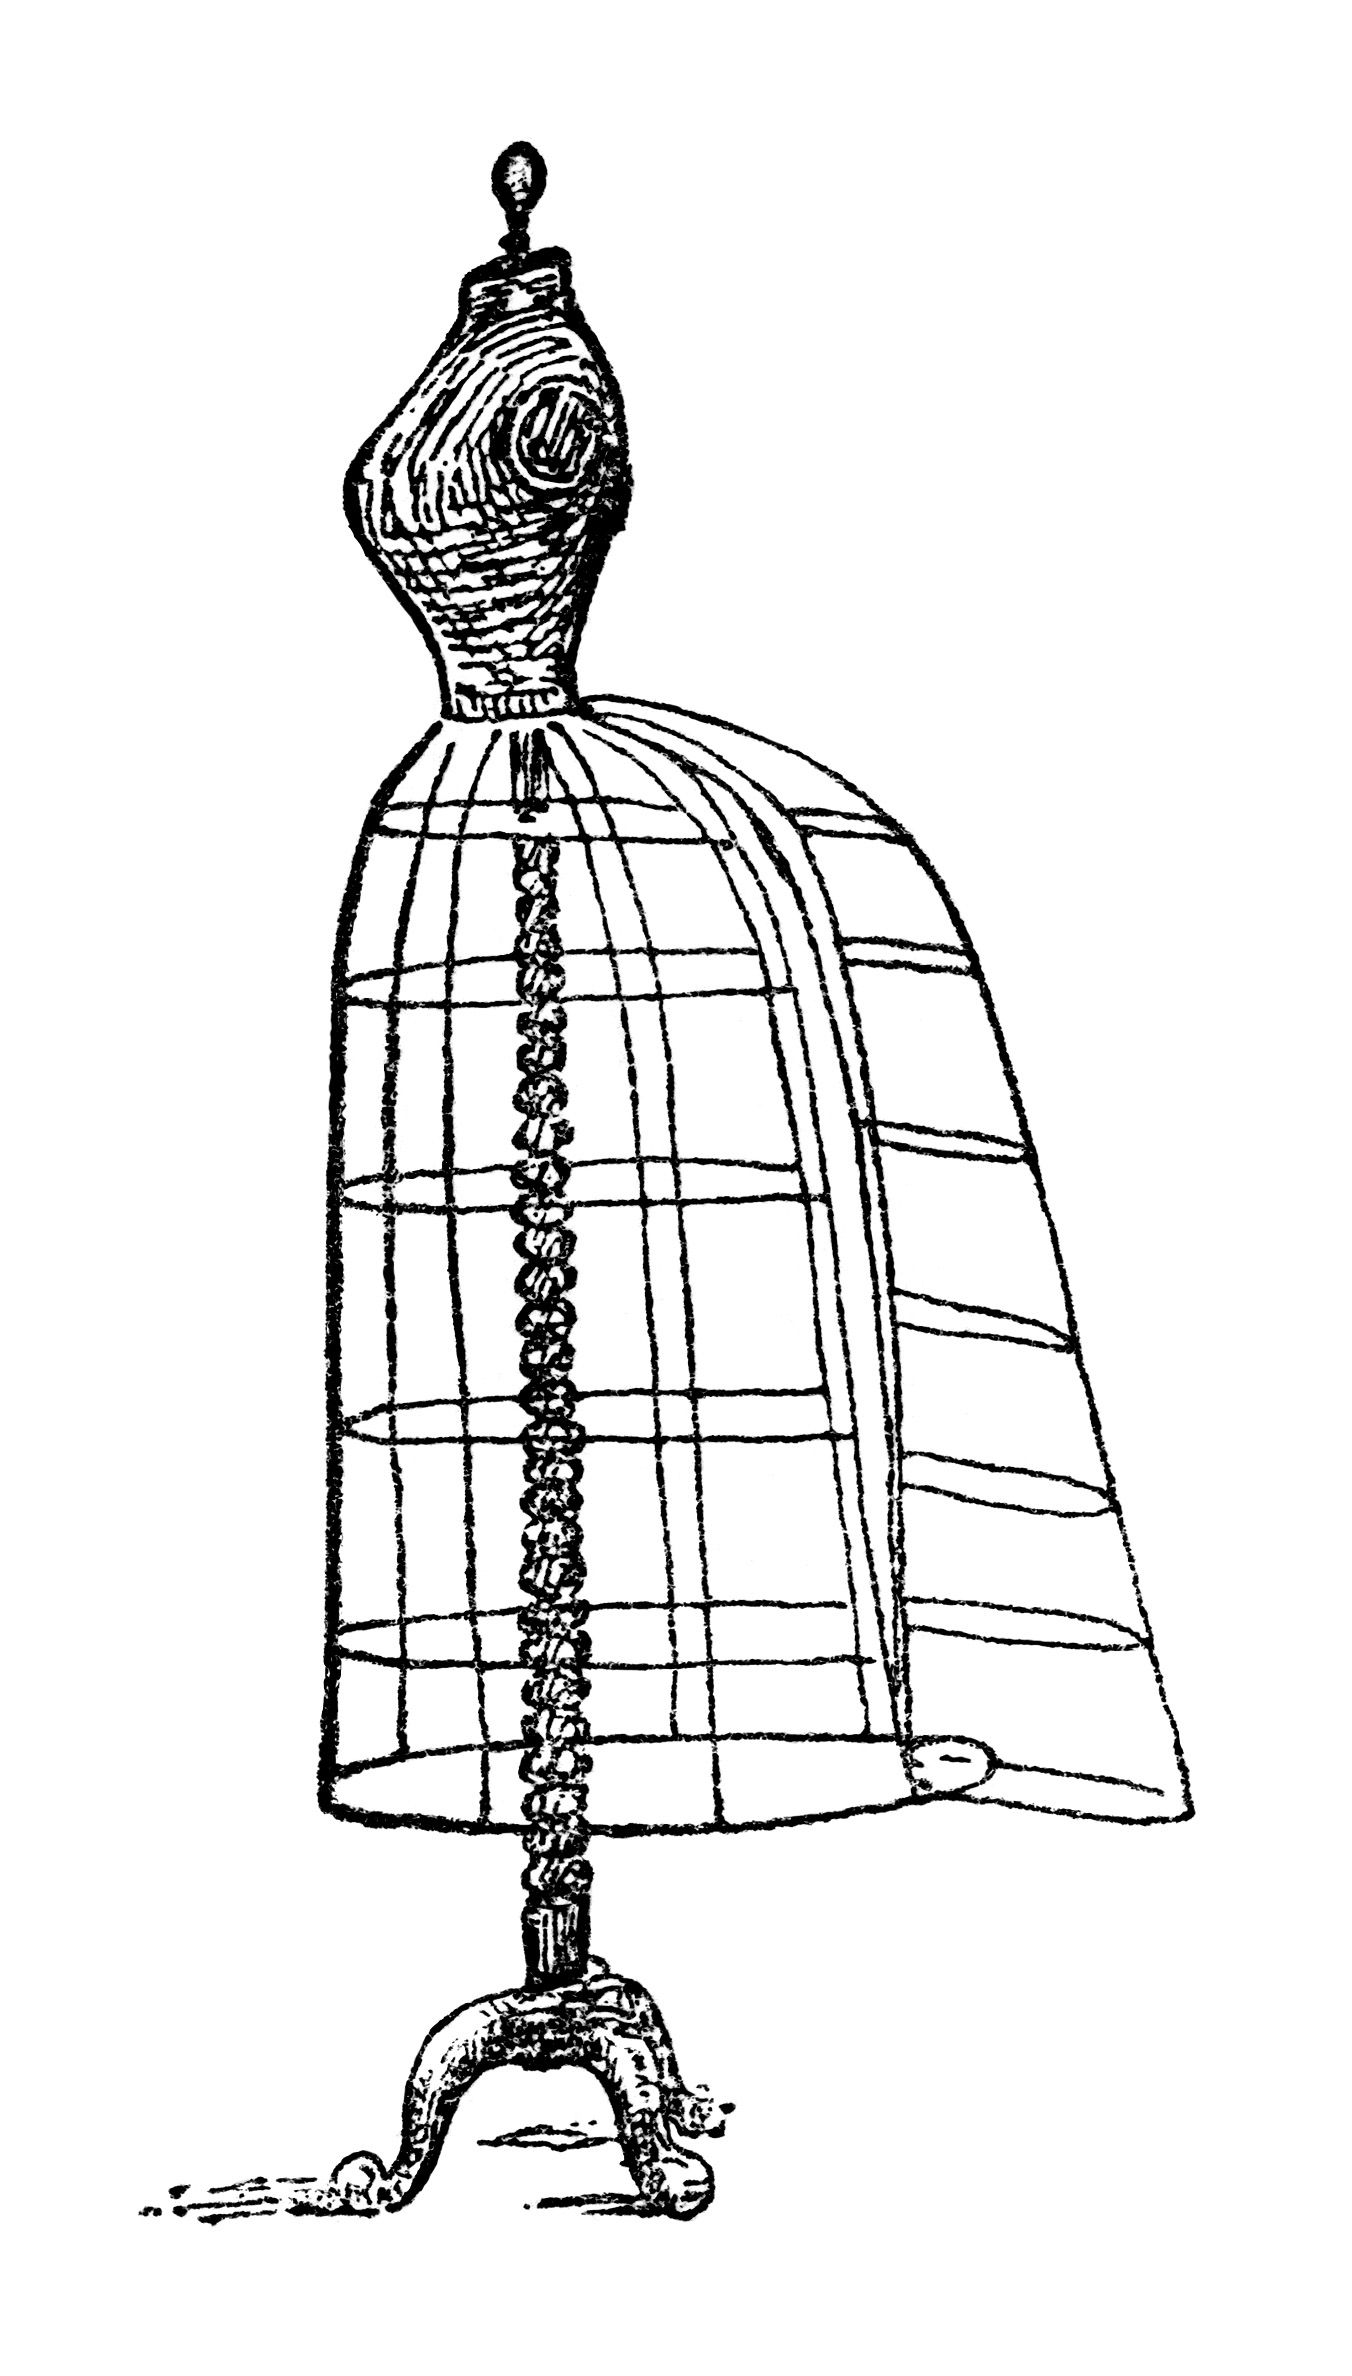 Sewing Machine Clip Art Black and White | ... sewing clip art ... for Wire Clipart Black And White  584dqh